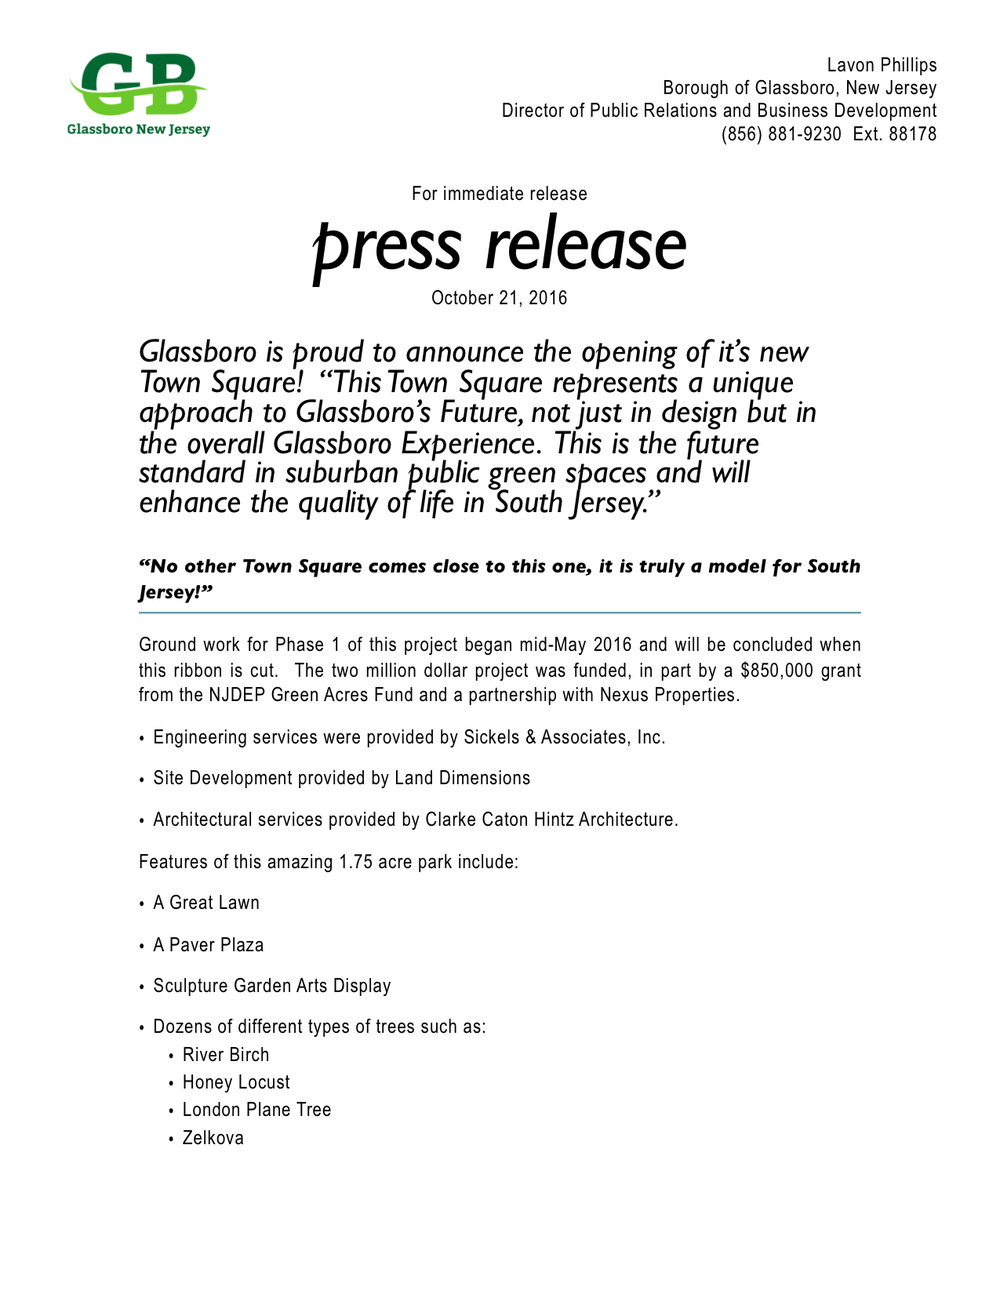 app press release template - glassboro is proud to announce the opening of it s new